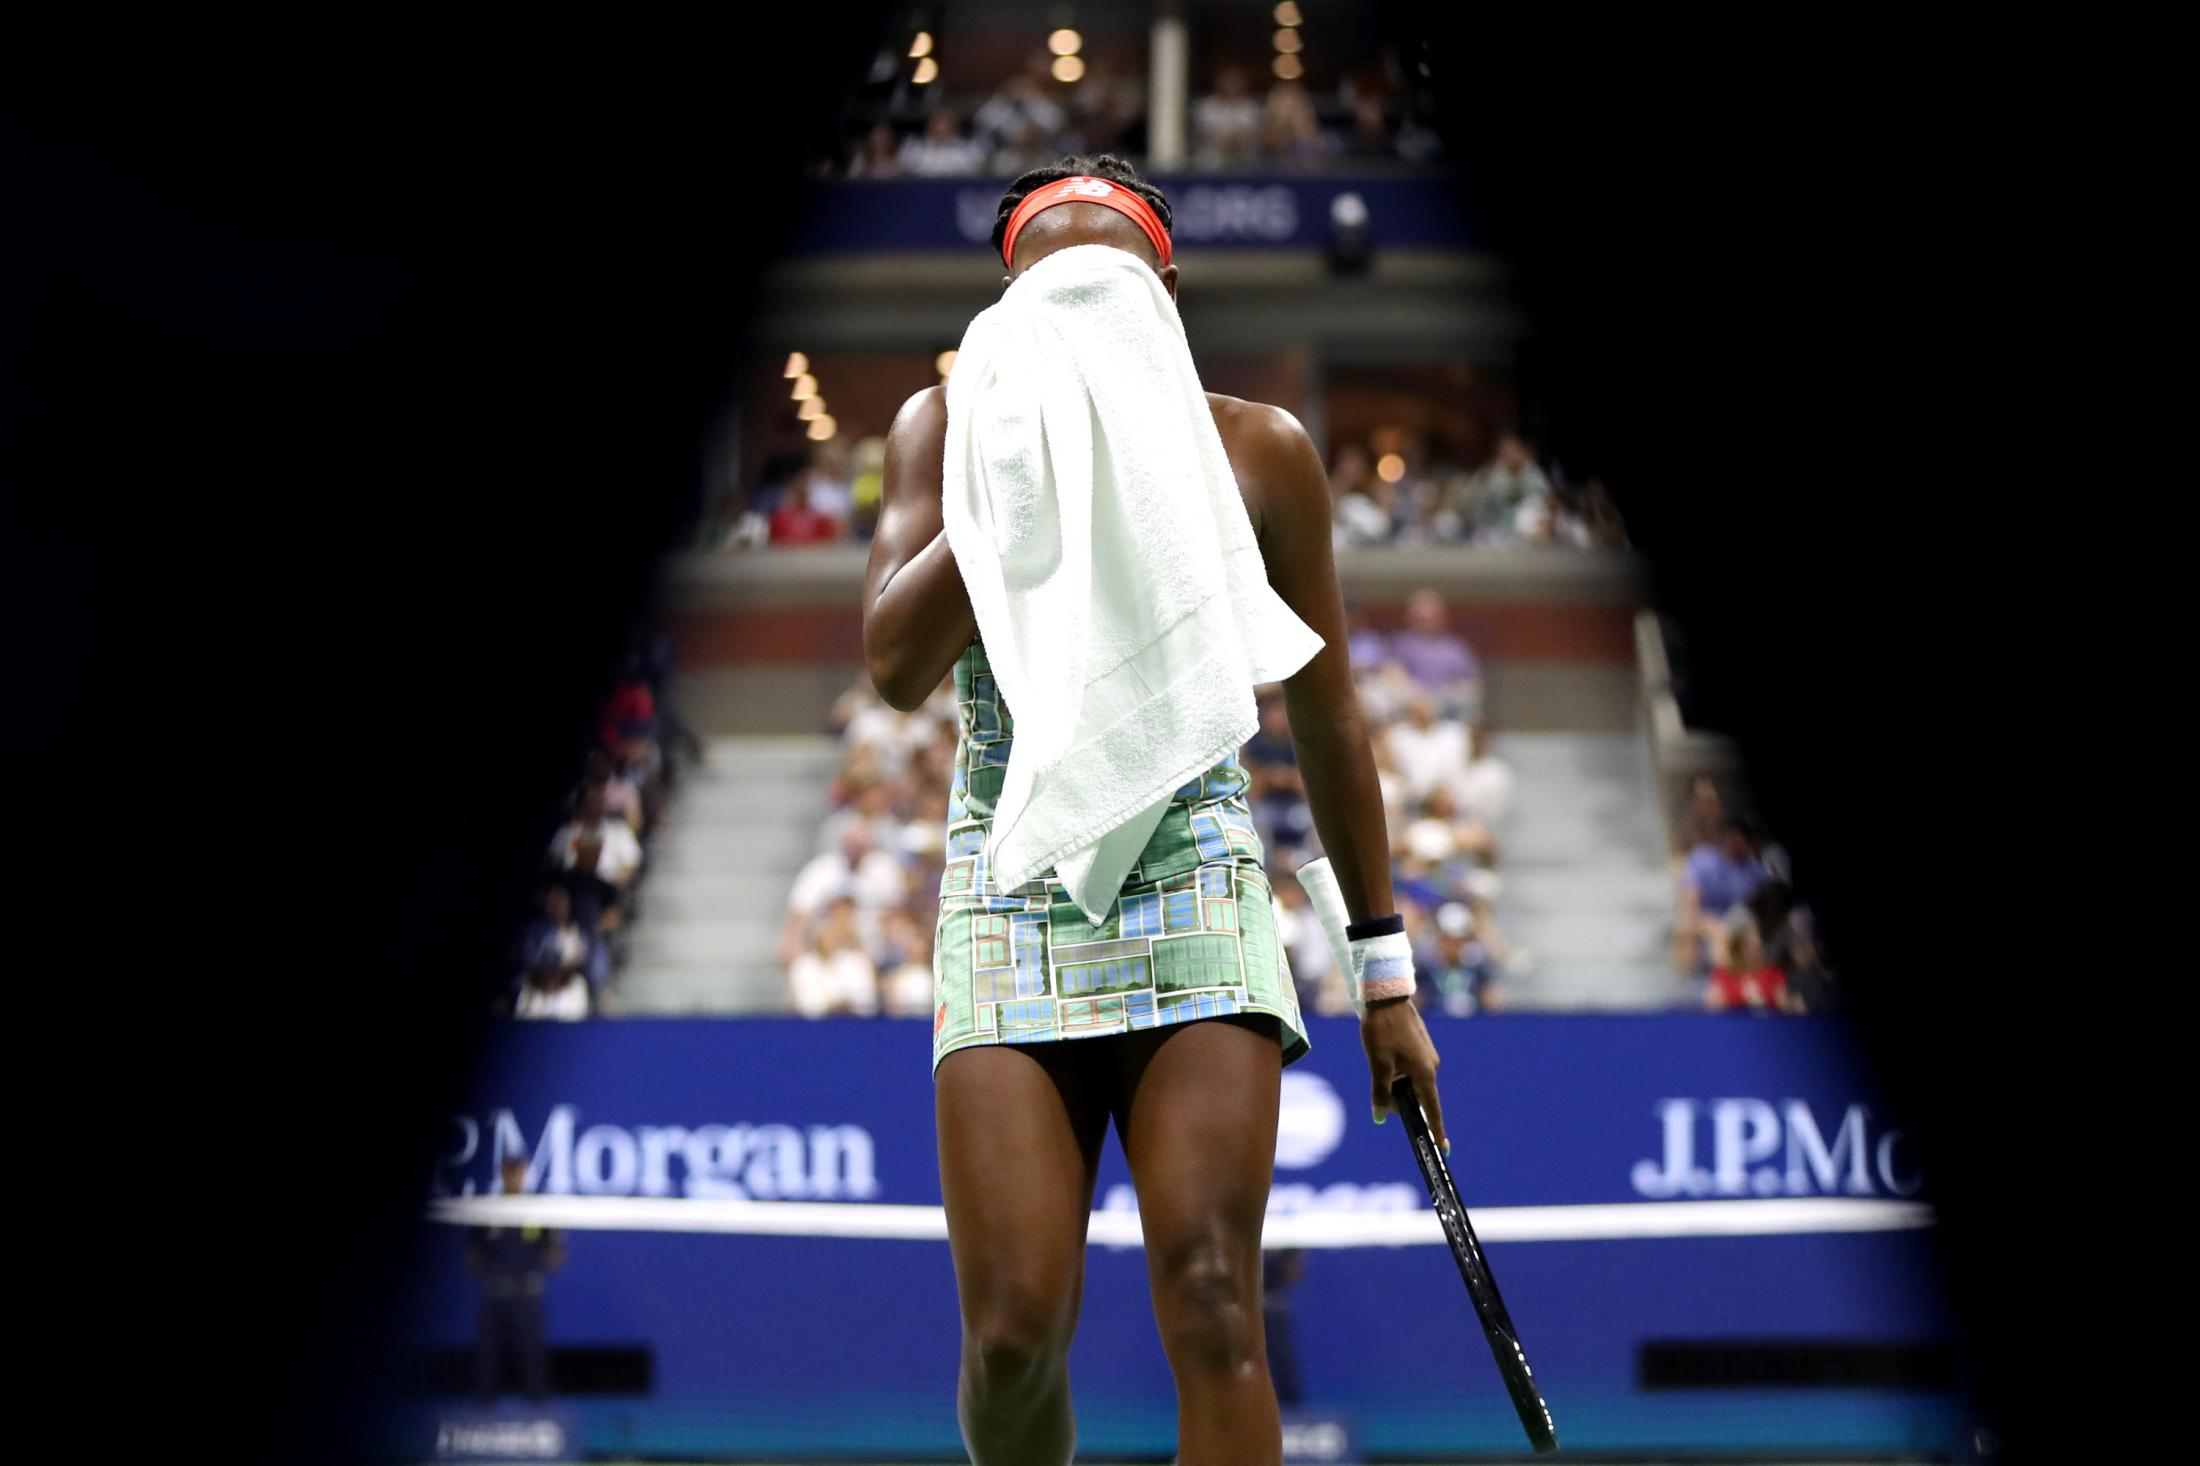 NEW YORK, NEW YORK - AUGUST 31: Cori Gauff of the United States reacts during her Women's Singles third round match against Naomi Osaka of Japan on day six of the 2019 US Open at the USTA Billie Jean King National Tennis Center on August 31, 2019 in Queens borough of New York City. (Photo by Katharine Lotze/Getty Images)